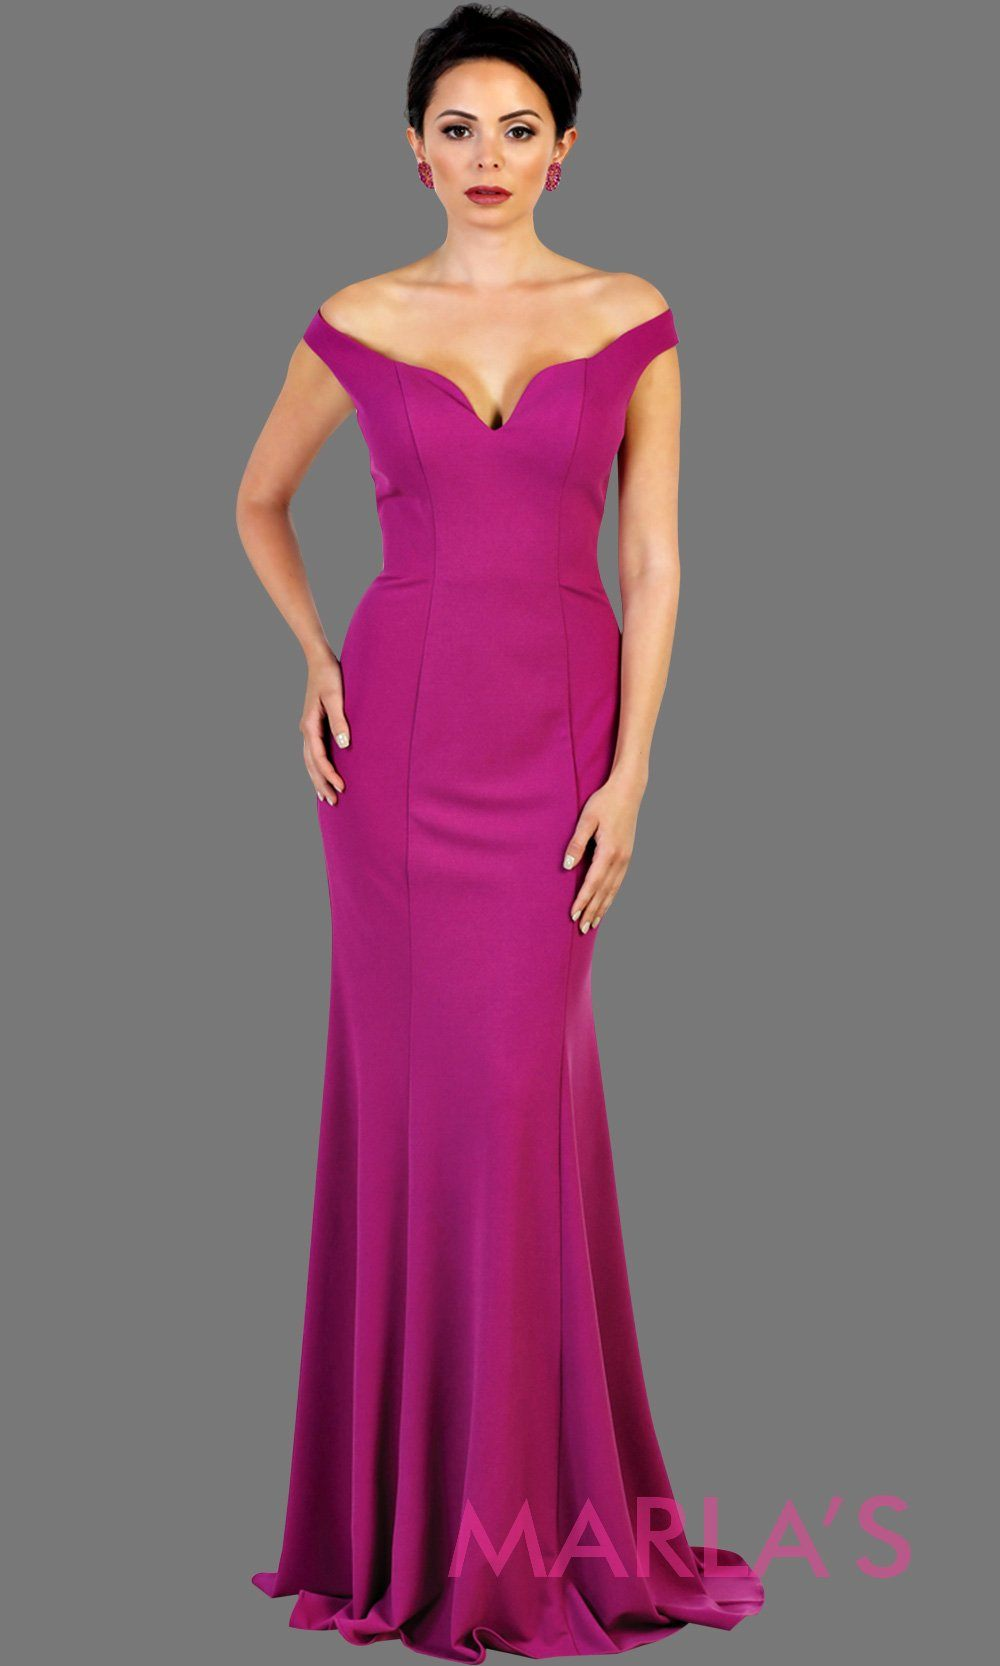 Long fitted magenta mermaid dress with low v back and low front. Perfect for prom, fitted evening gown, gala, formal purple pink wedding guest dress, western party dress, full length formal dress. Available in plus sizes.